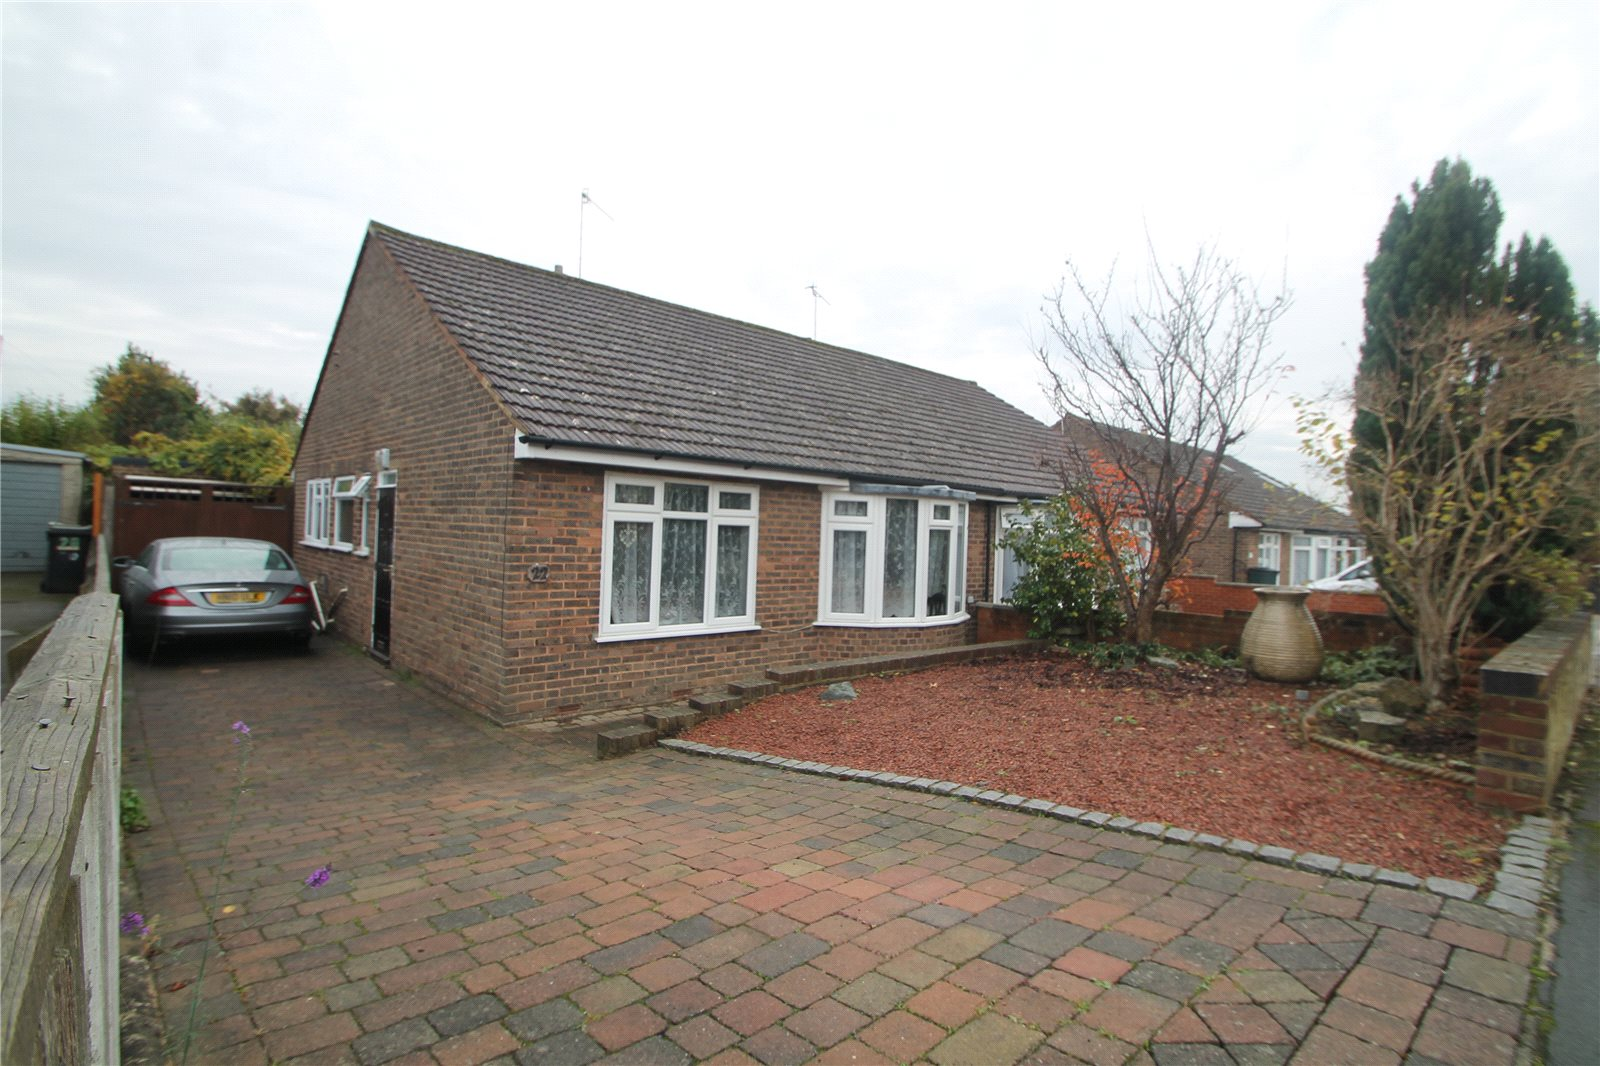 2 Bedrooms Bungalow for sale in Pen Way Tonbridge Kent TN10